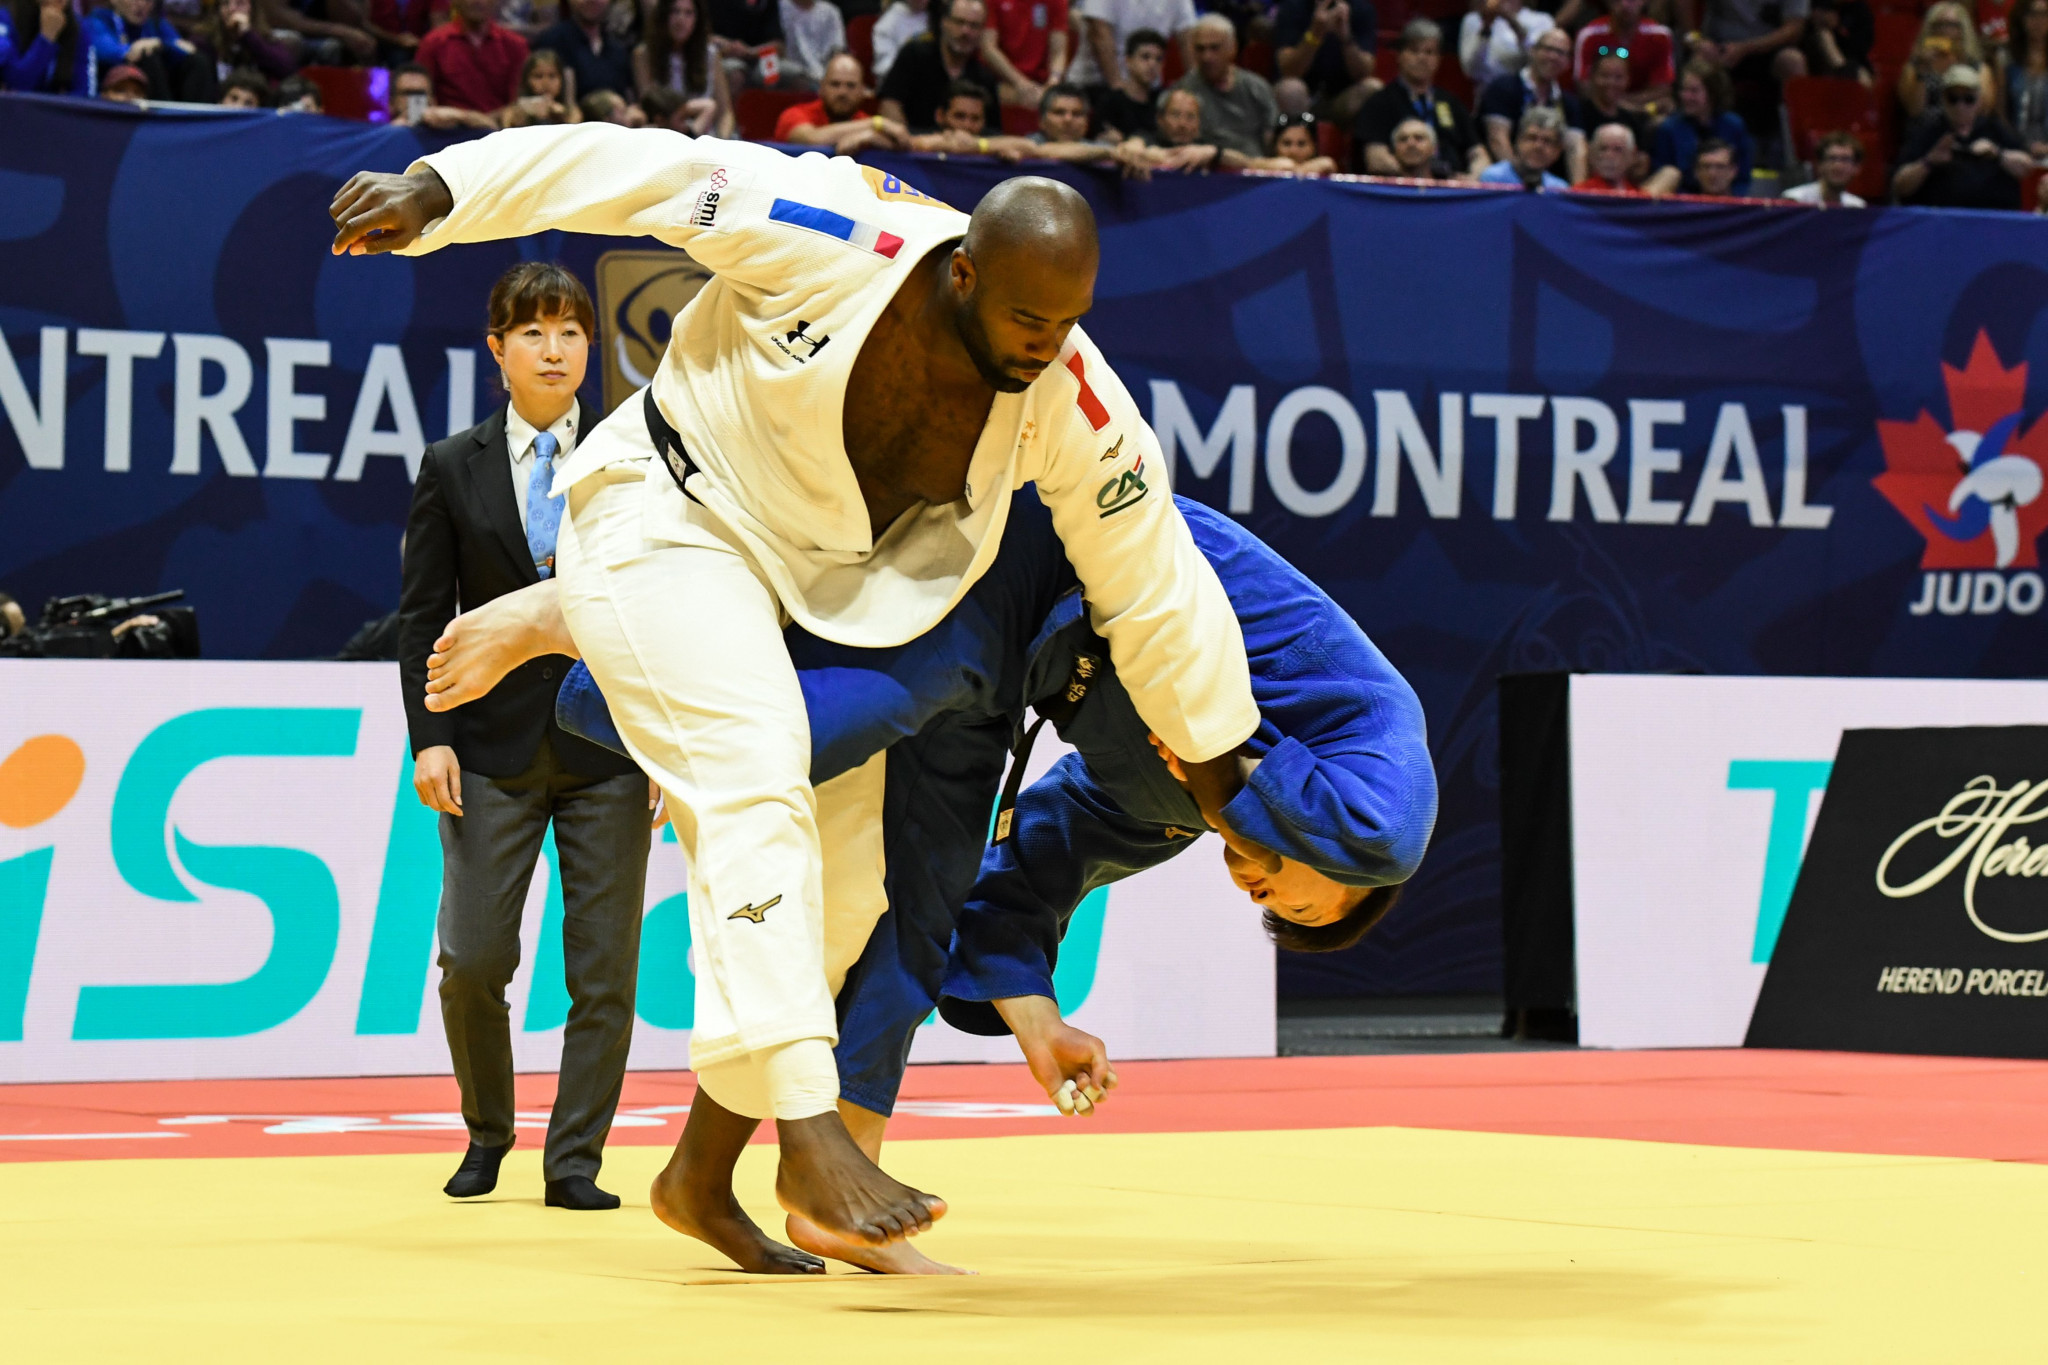 Riner says he will be back on the tatami in Tokyo next year for the Olympic Games ©Getty Images